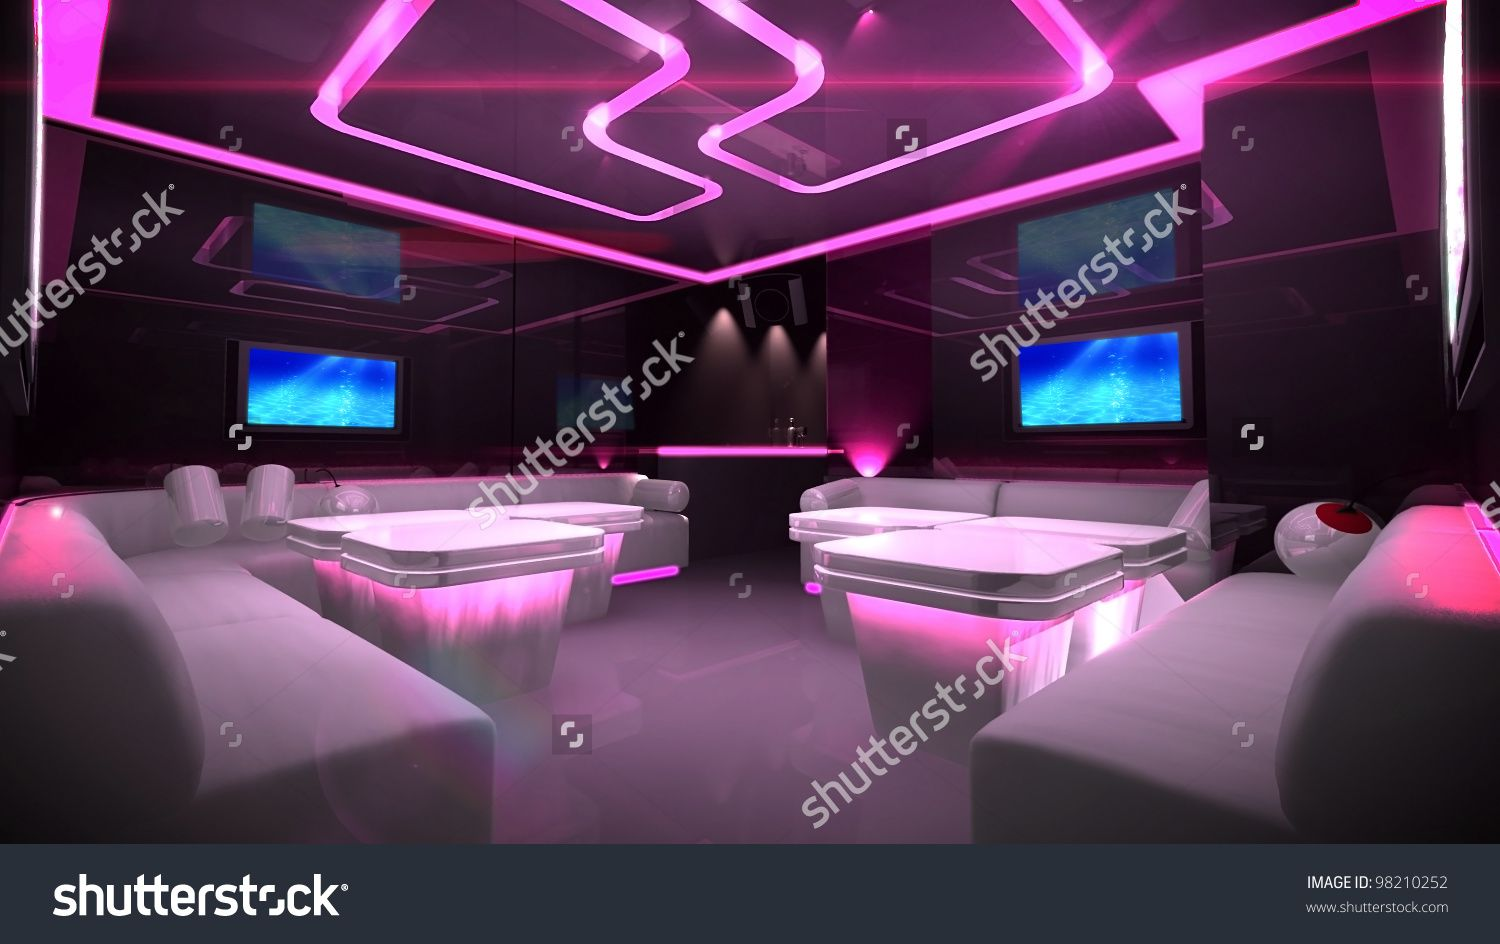 Exceptional Stock Photo The Nightclub Interior Design With The